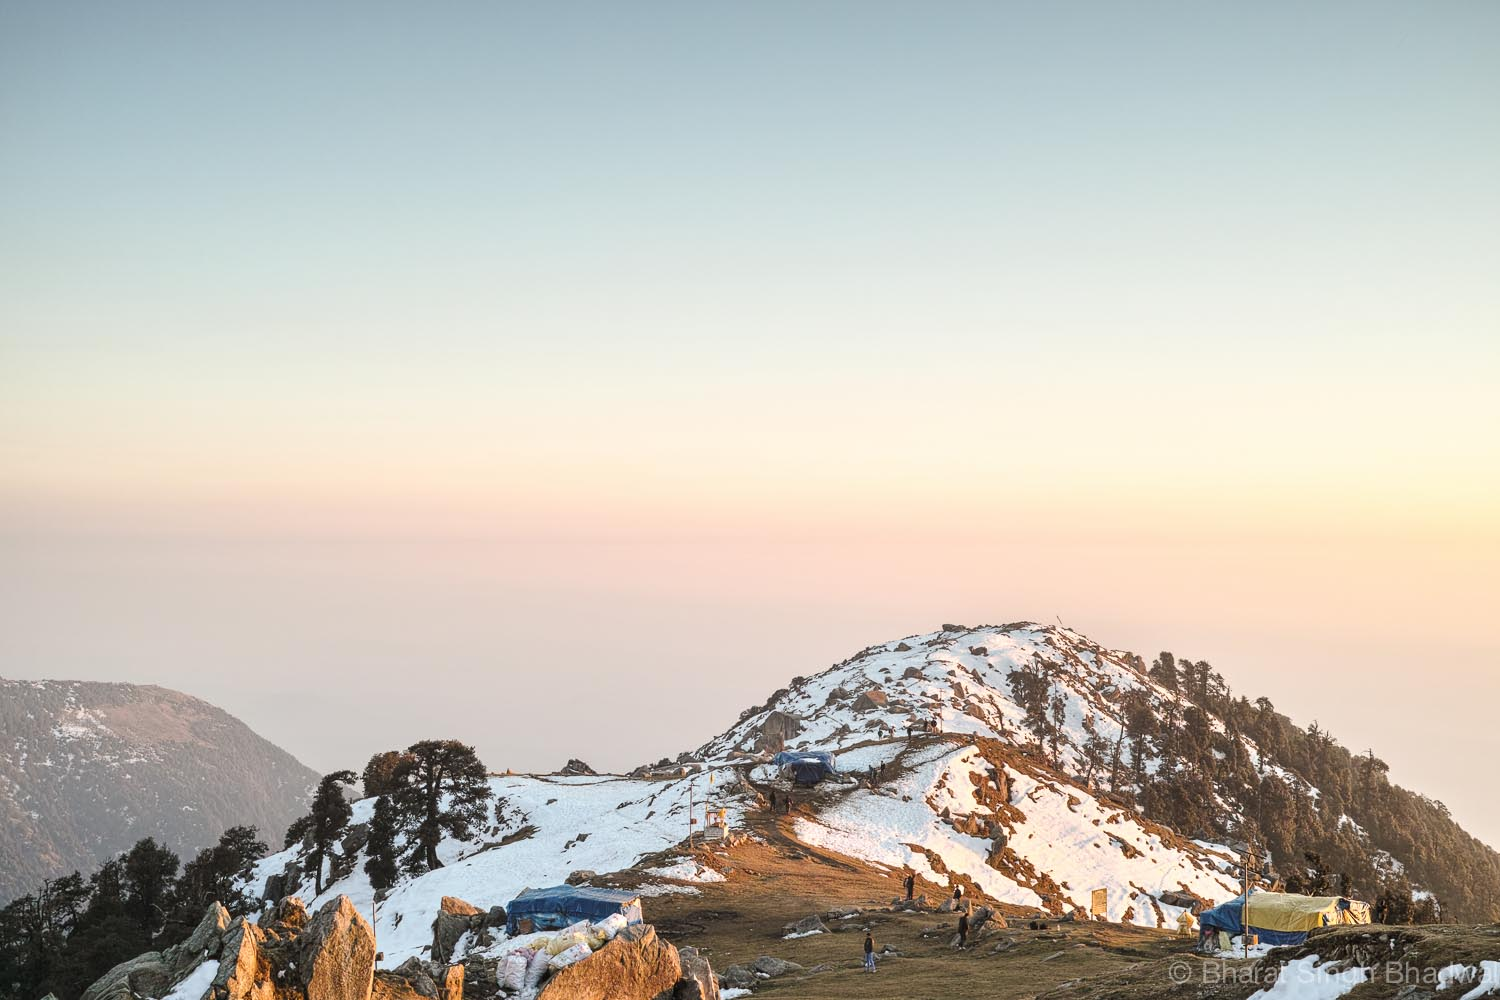 Triund during2015 winter, just a day before a heavy snowfall.